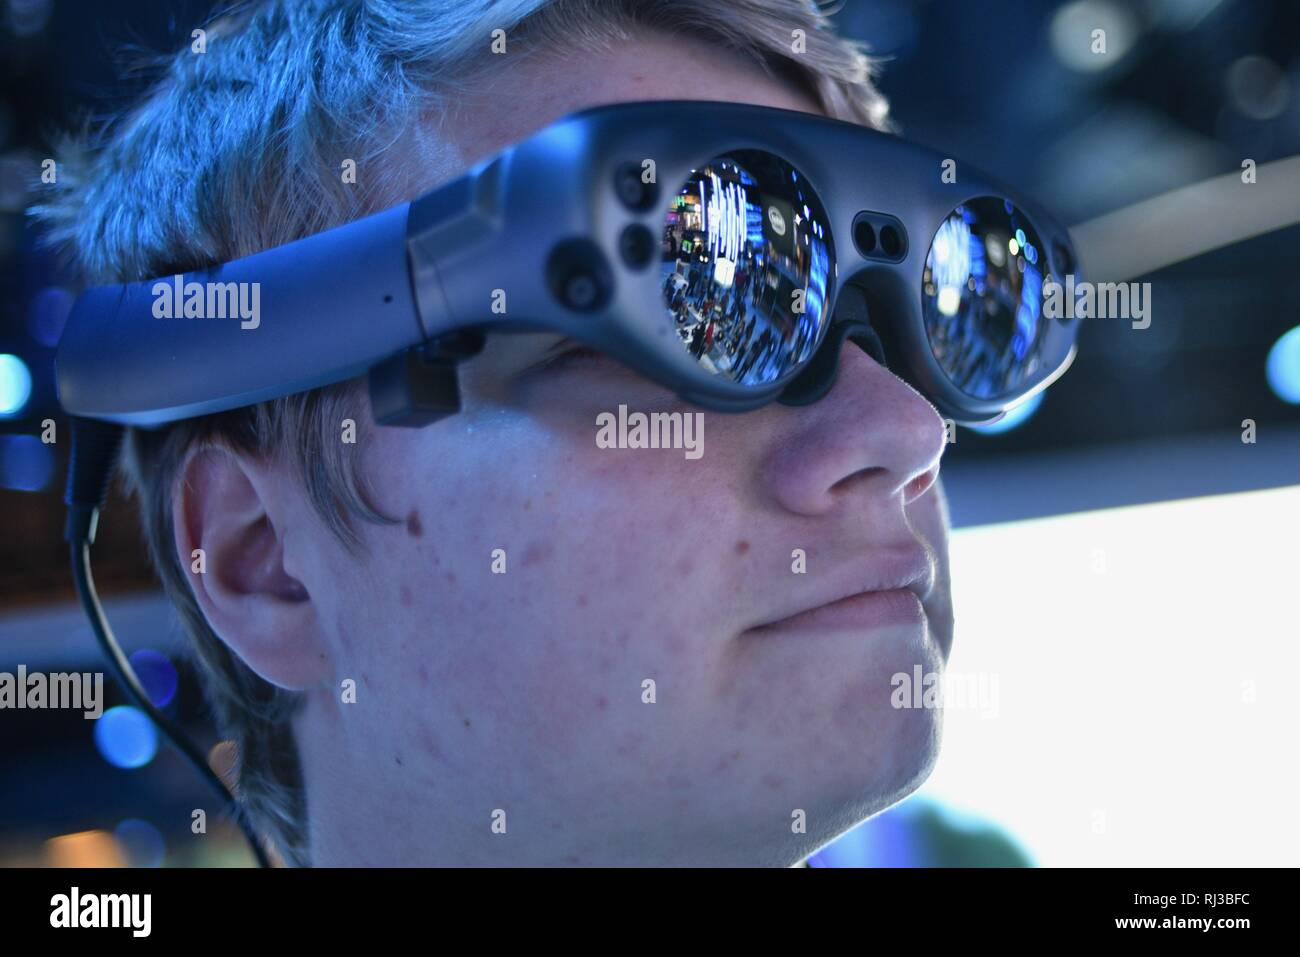 Using Magic Leap One mixed reality goggle for Mimesys debut of holographic collaboration as 2 people build drone at Intel booth at CES, Las Vegas, USA Stock Photo